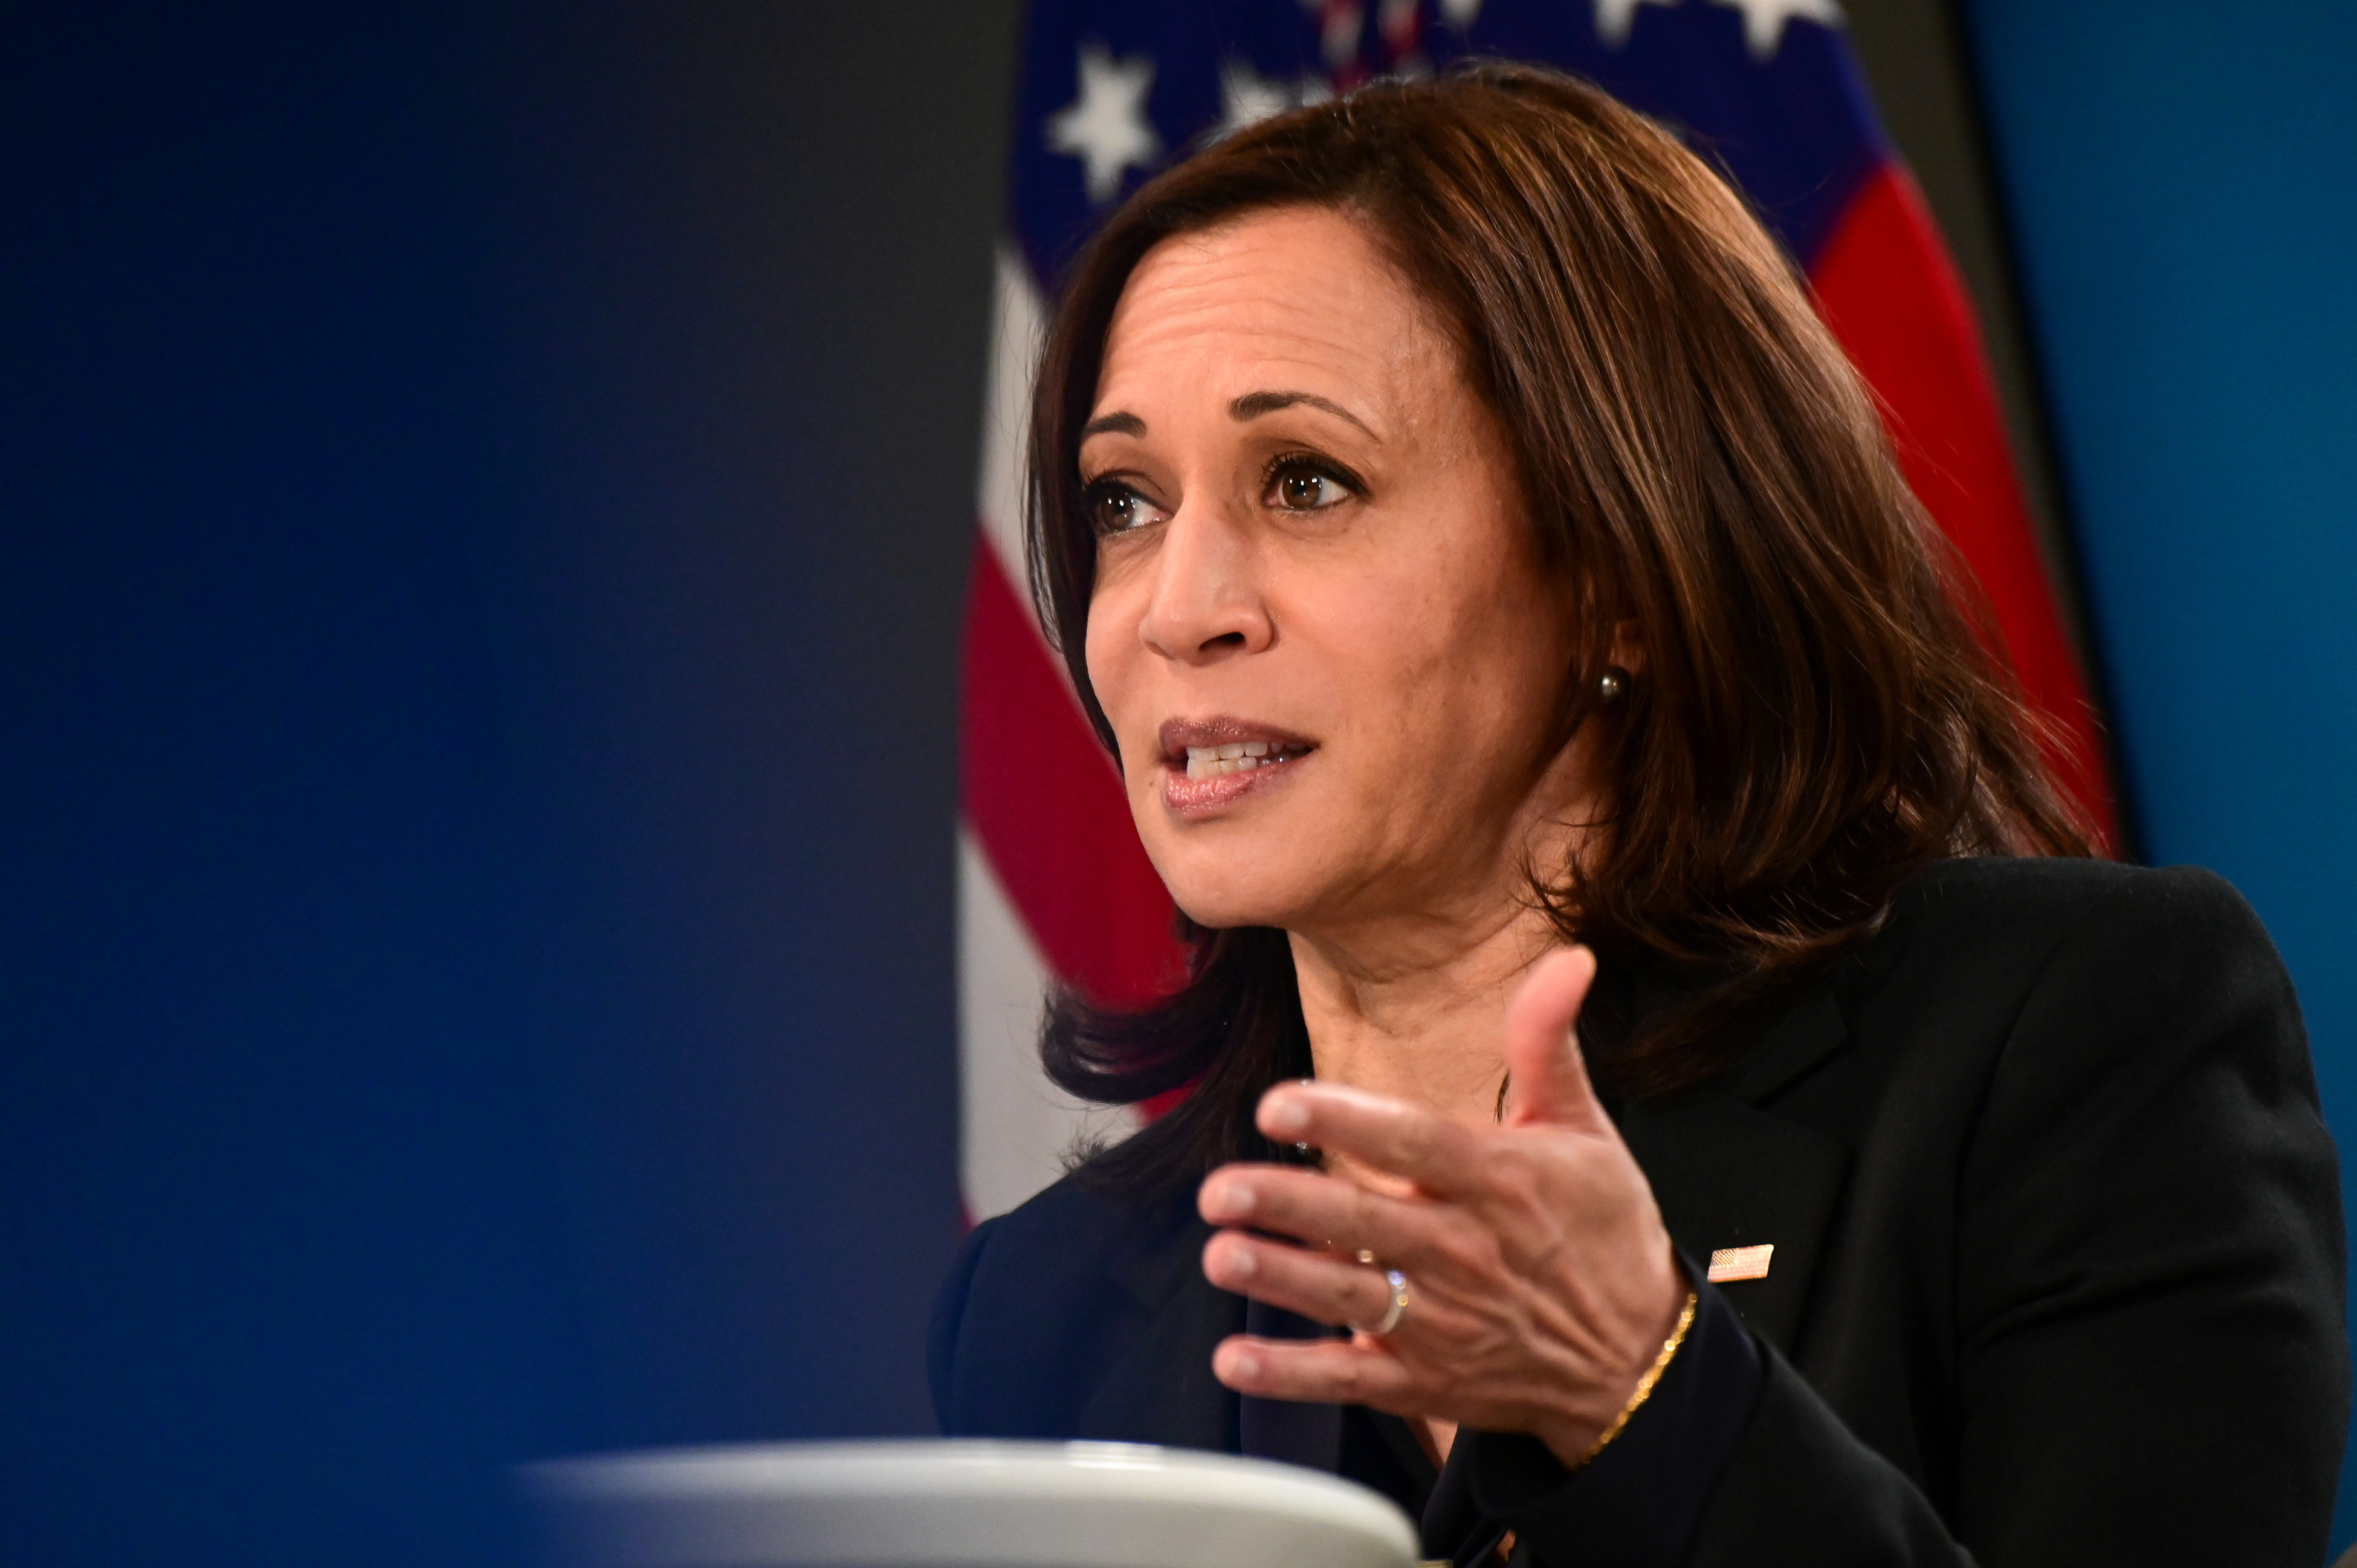 PODCAST – Thursday, March 25: New Haven's Vice Presidential Visit; The Celeb That Didn't Know She Had A Dishwasher; Connecticut's Concert Update